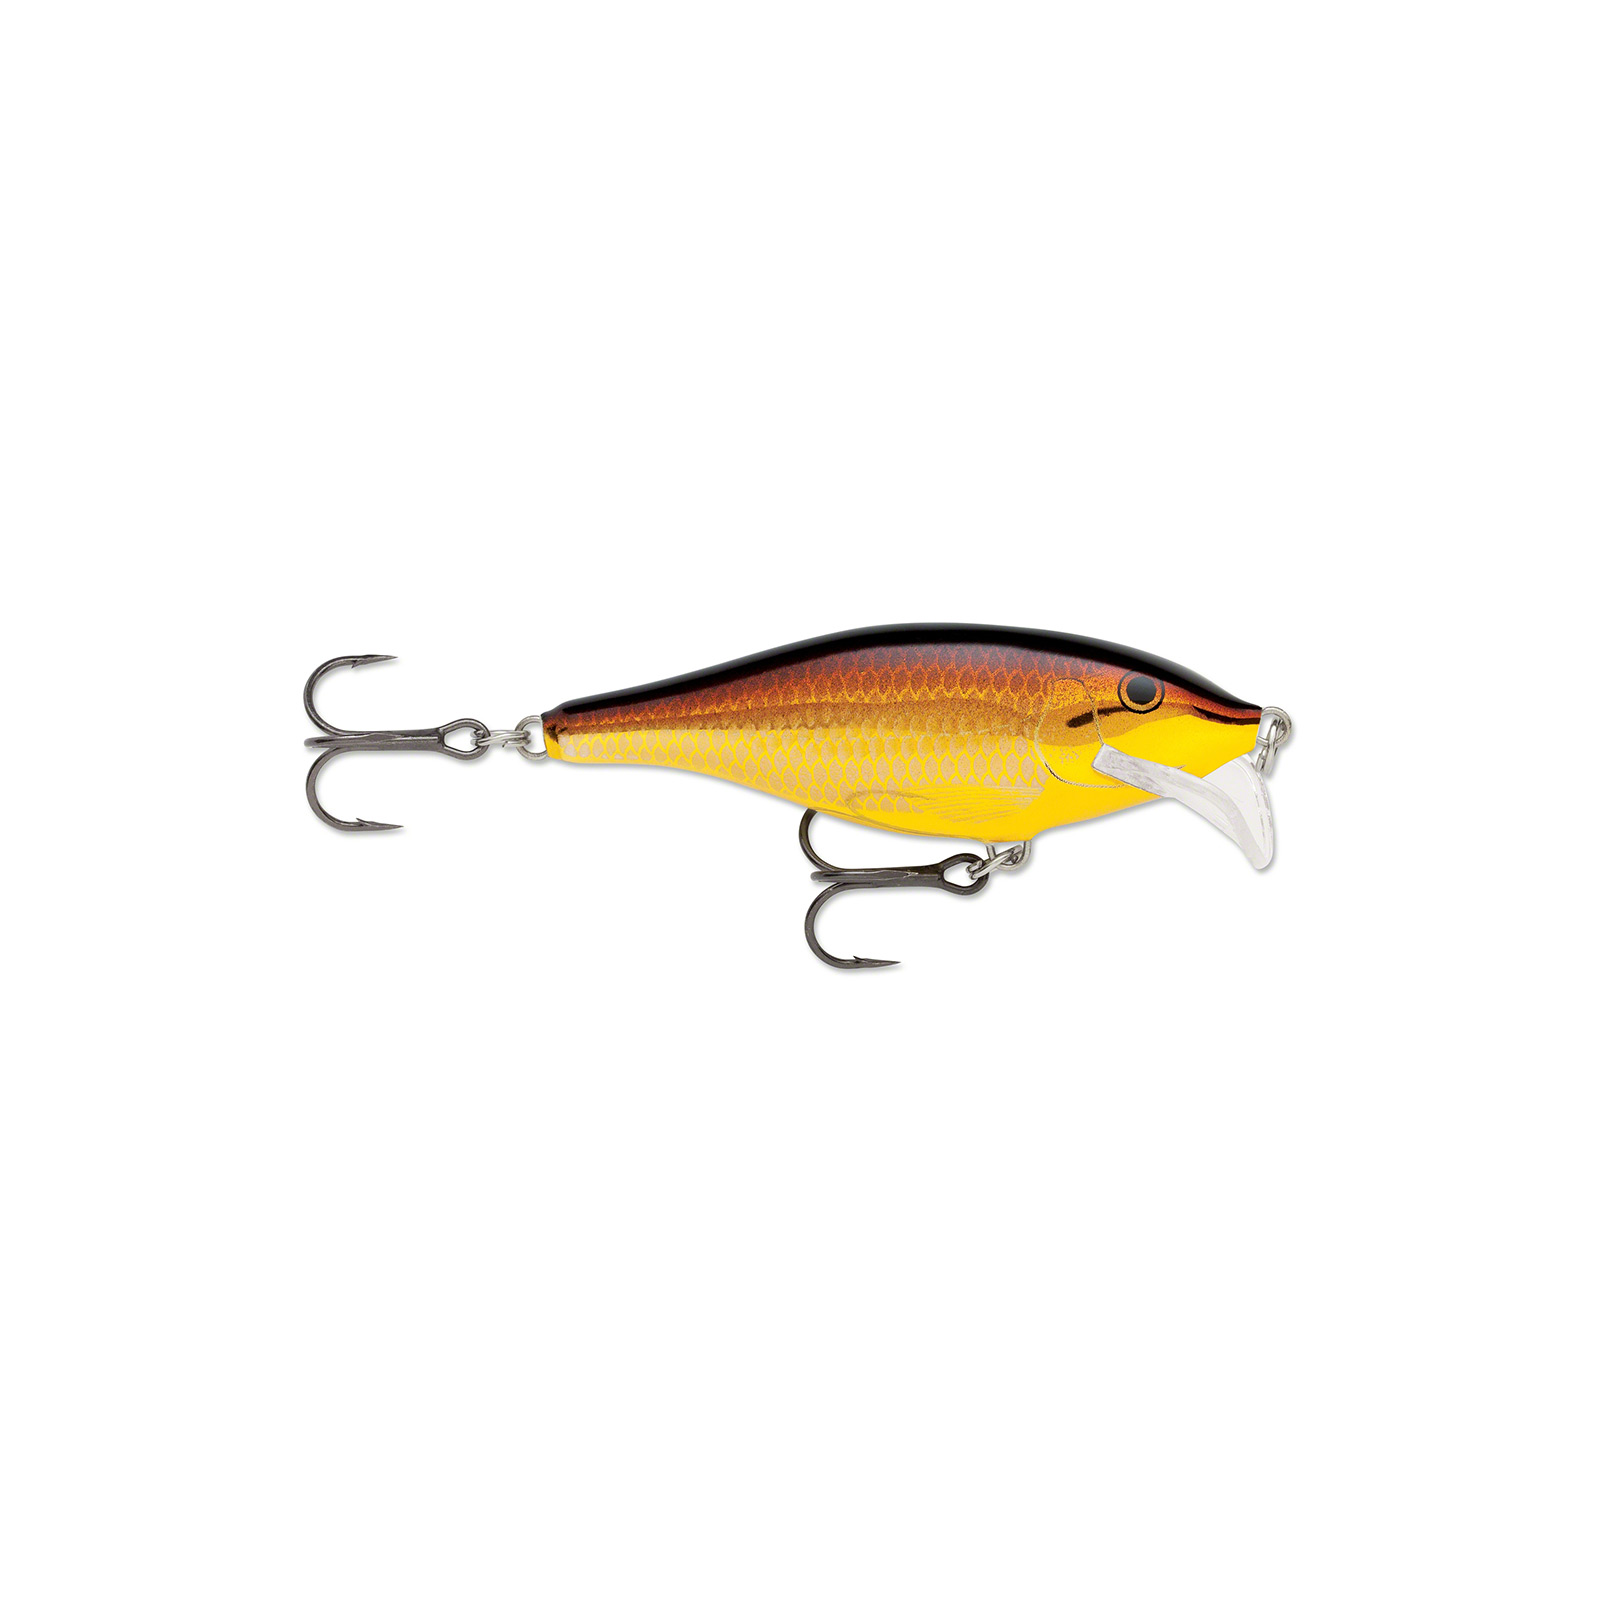 Rapala Scatter Rap Shad 07 Golden Alburnus Fishing Lure by Normark